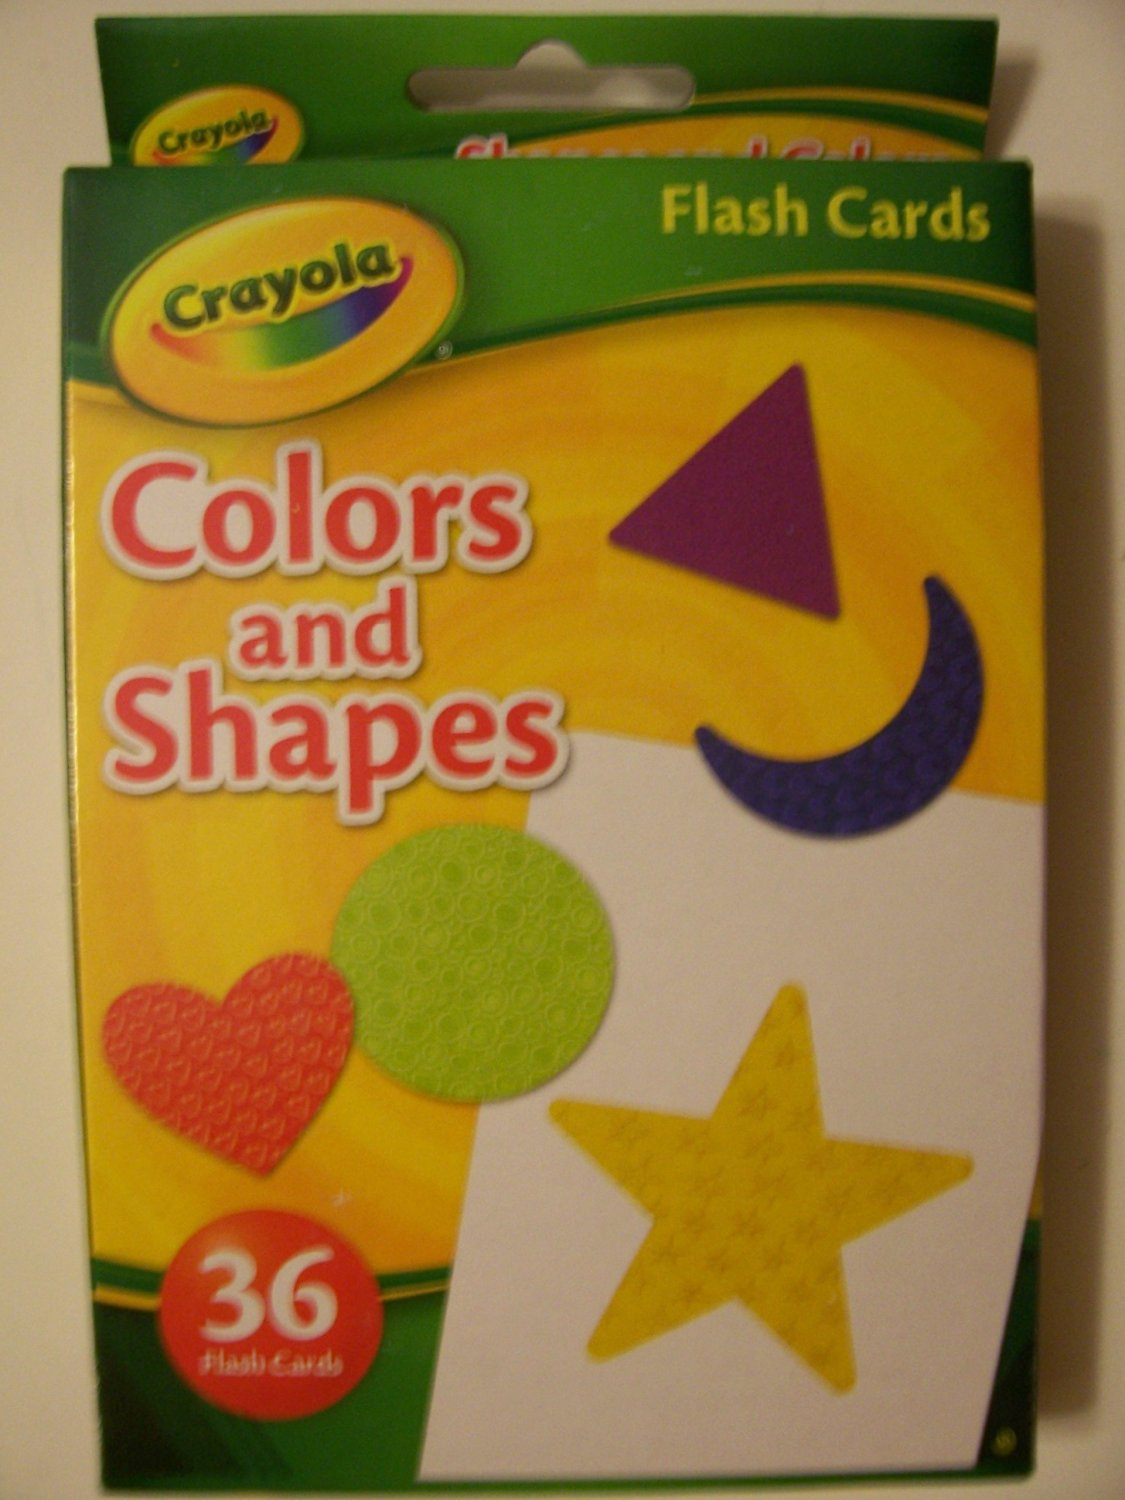 Crayola Educational Flash Cards ~ Colors and Shapes (36 Flash Cards; 2012) by Dalmatian Press